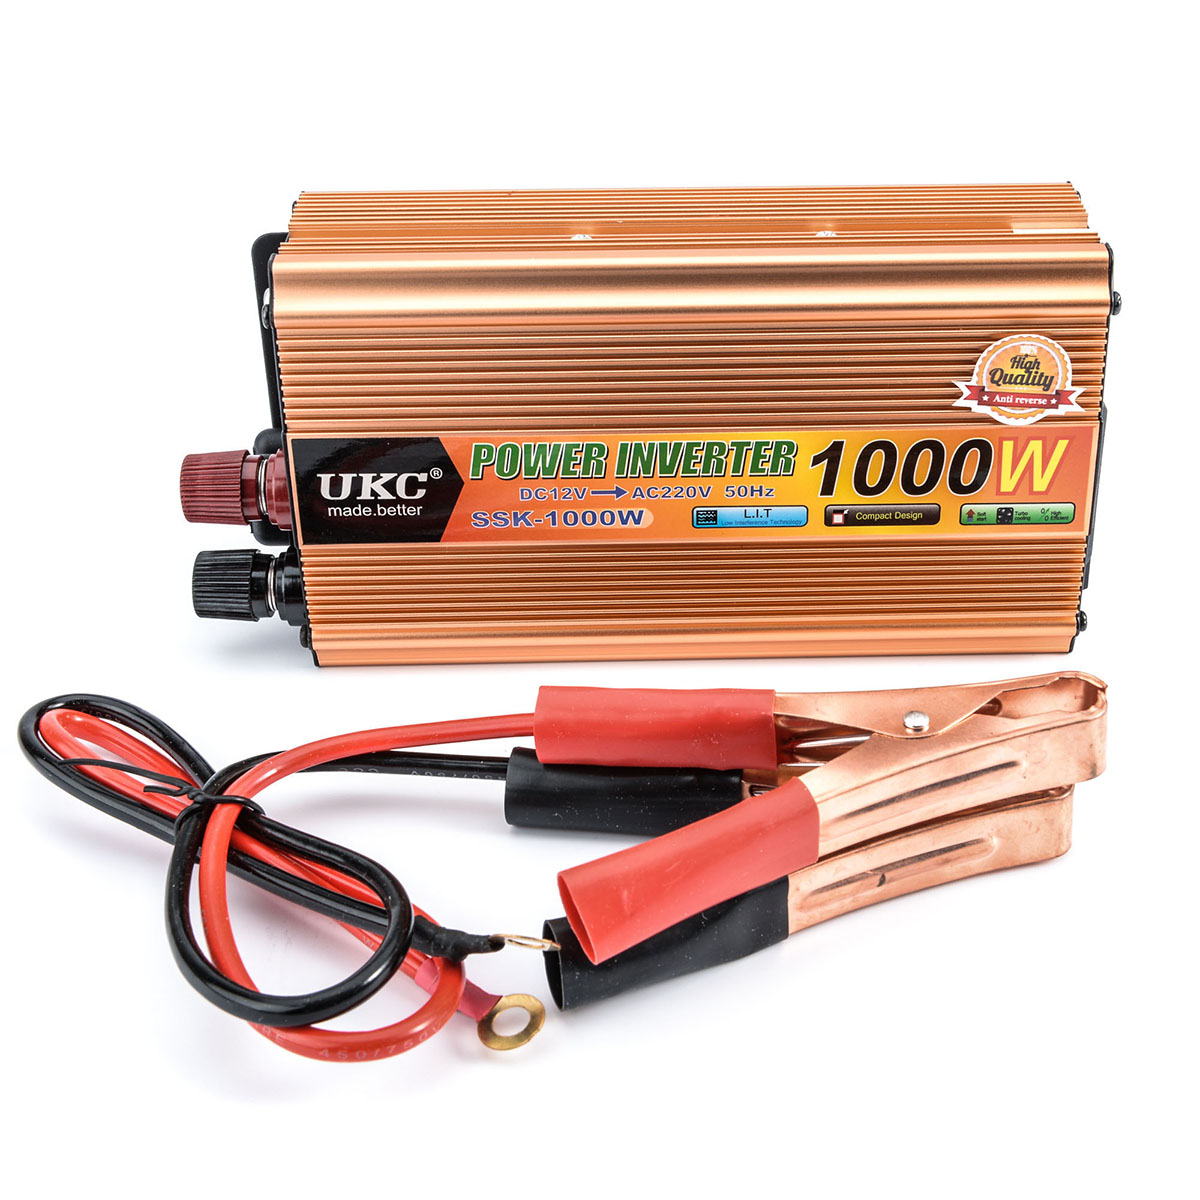 1000w Modified Sine Wave Car Power Inverter Dc 12v To Ac 220v Design Code For Aeproductgetsubject